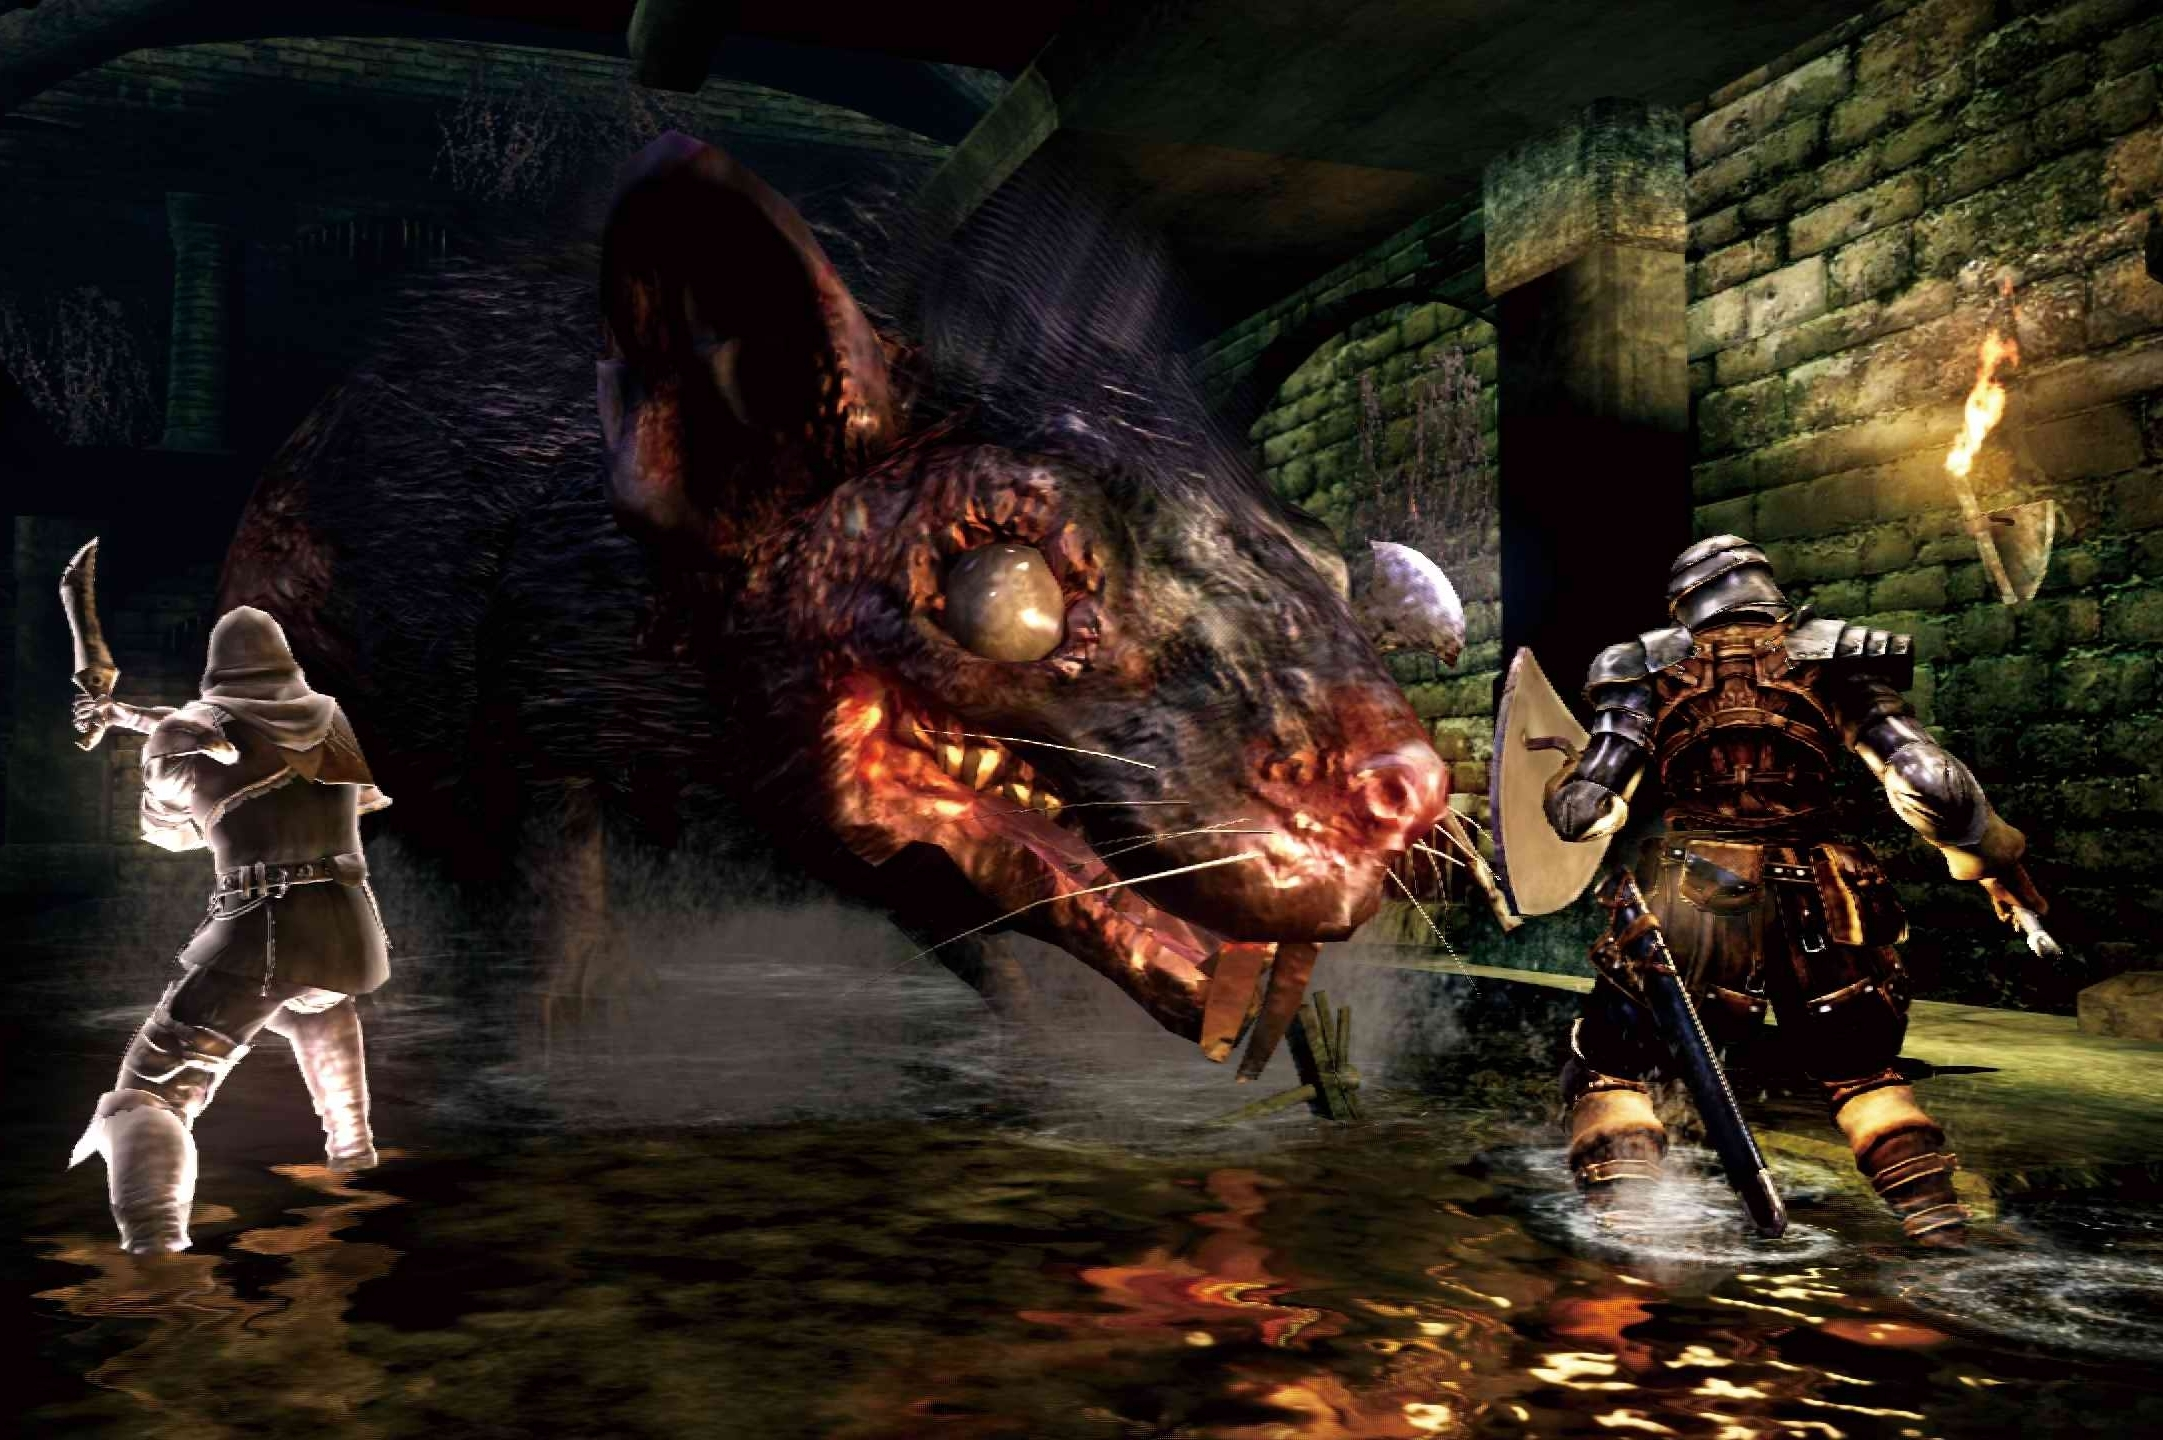 demon 39 s dark souls inspired the ps4 39 s features says. Black Bedroom Furniture Sets. Home Design Ideas